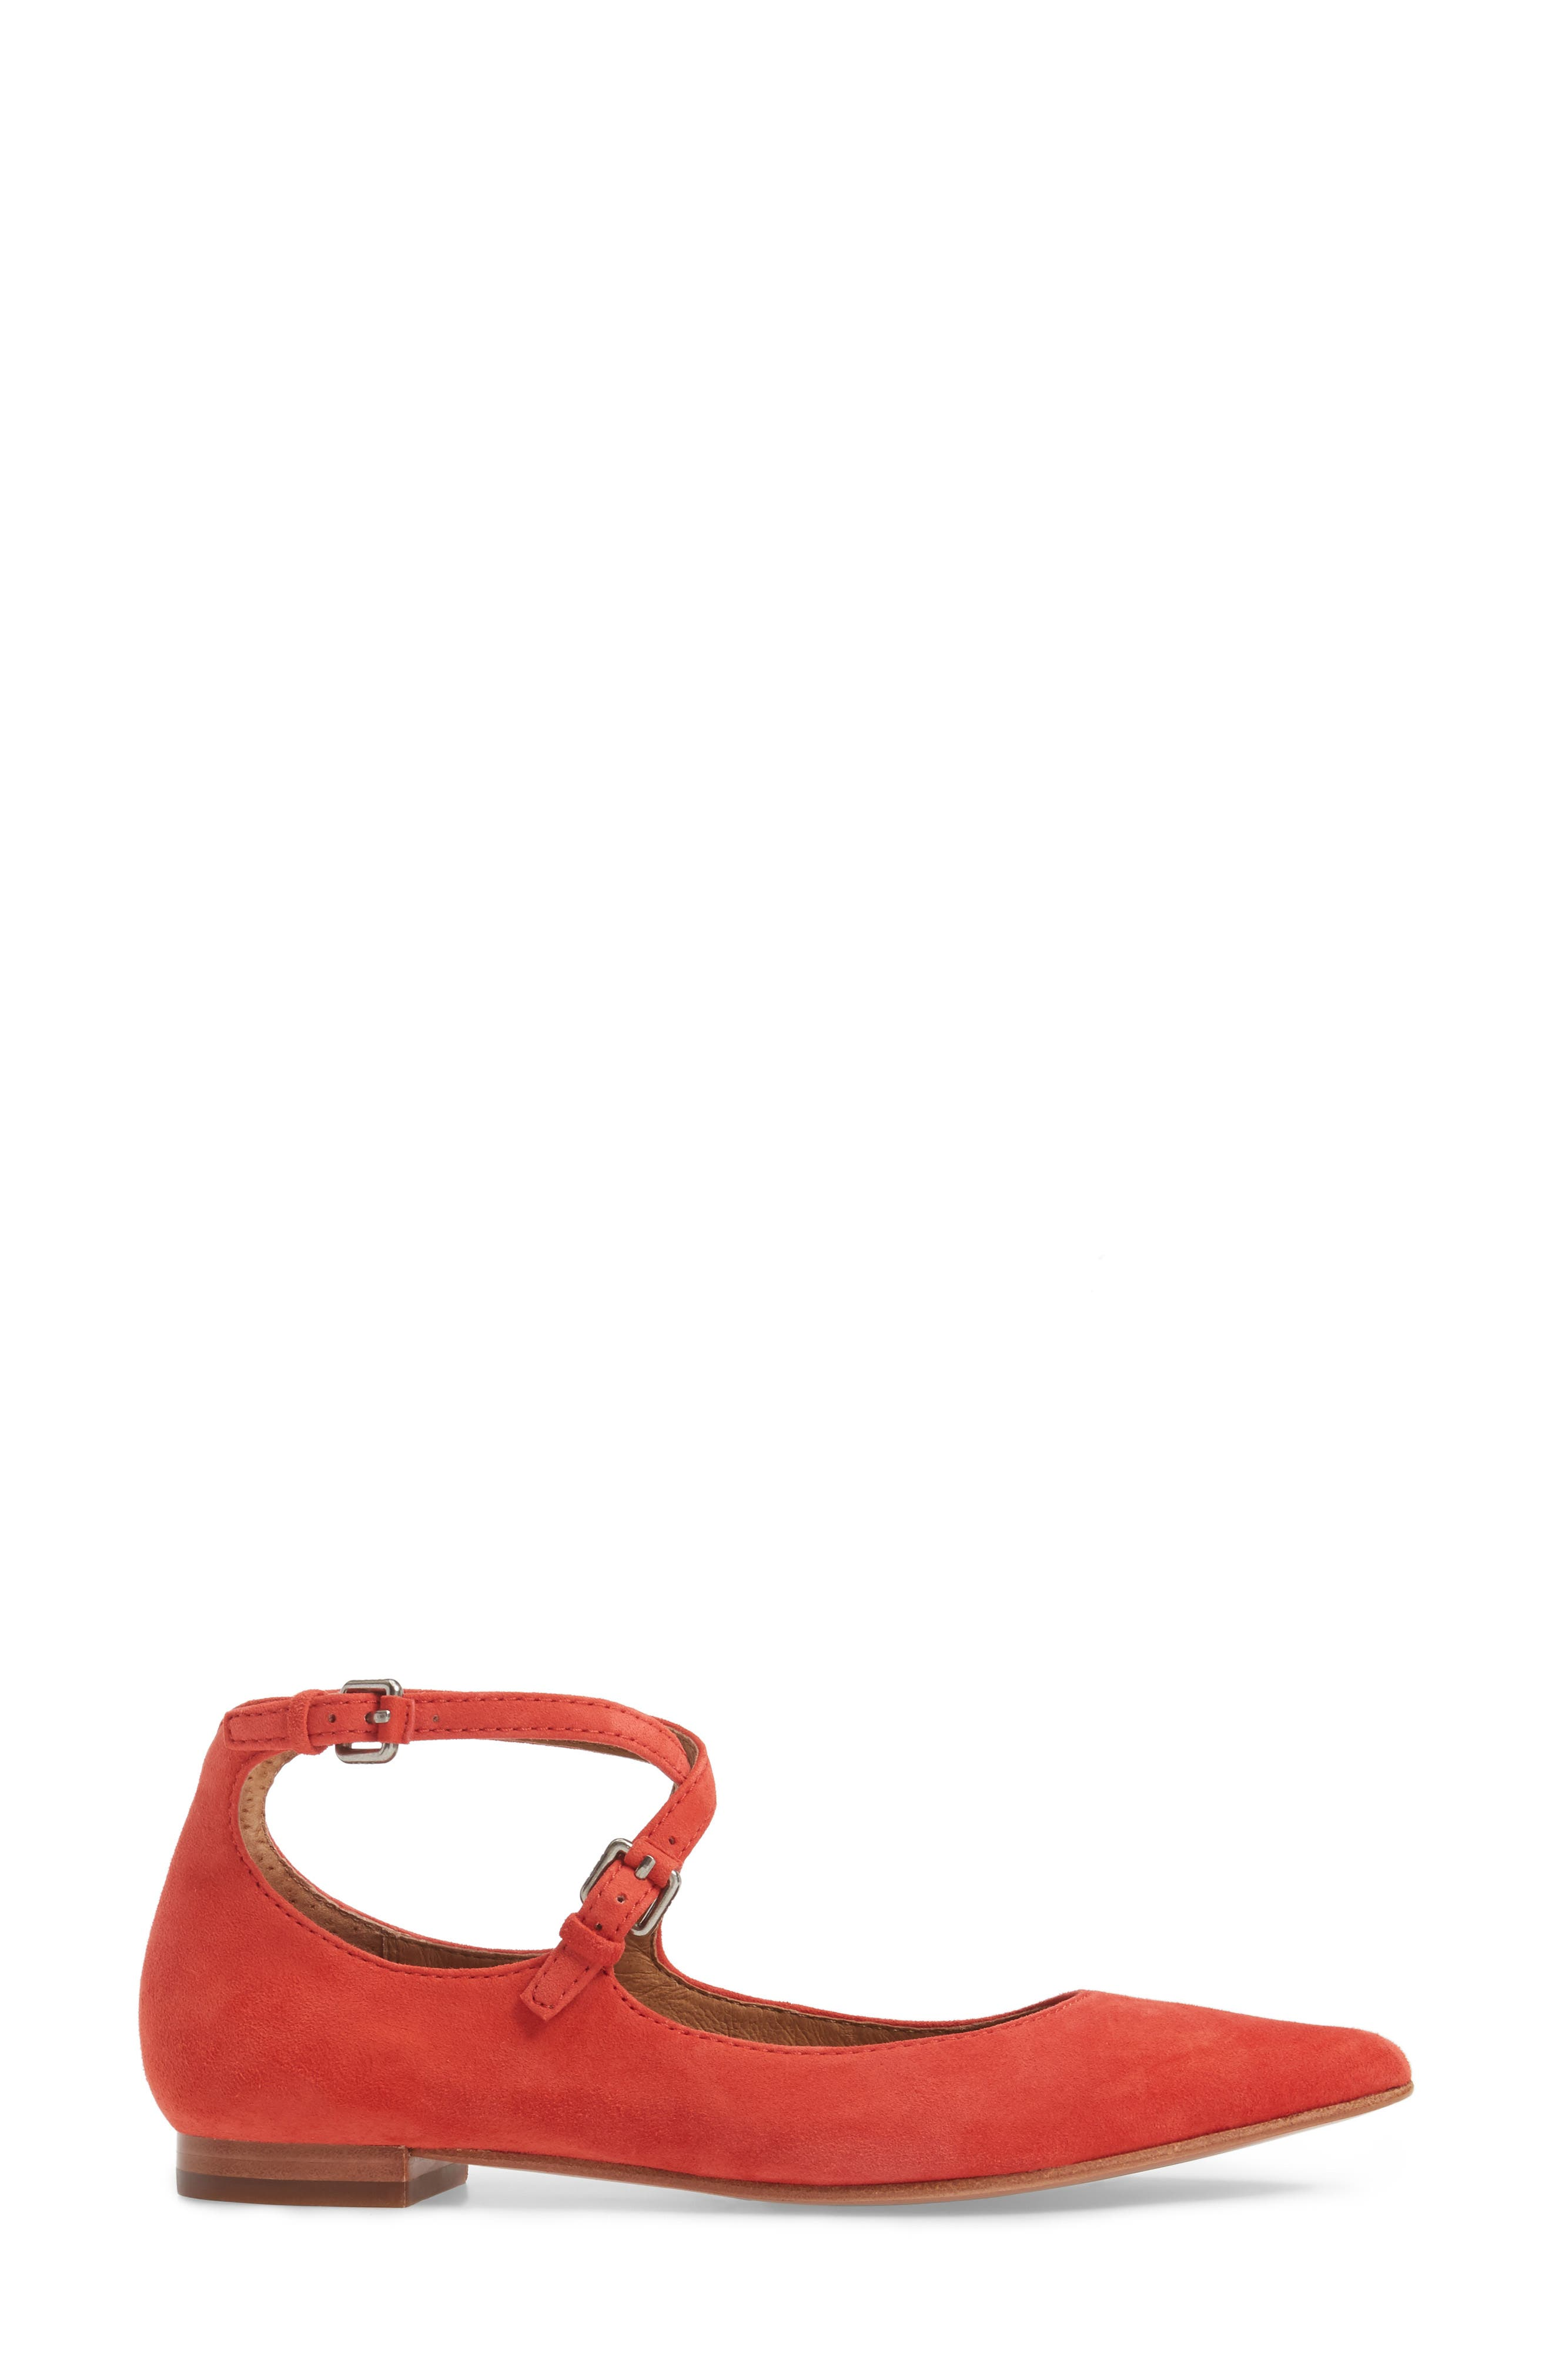 Sienna Cross Ballet Flat,                             Alternate thumbnail 9, color,